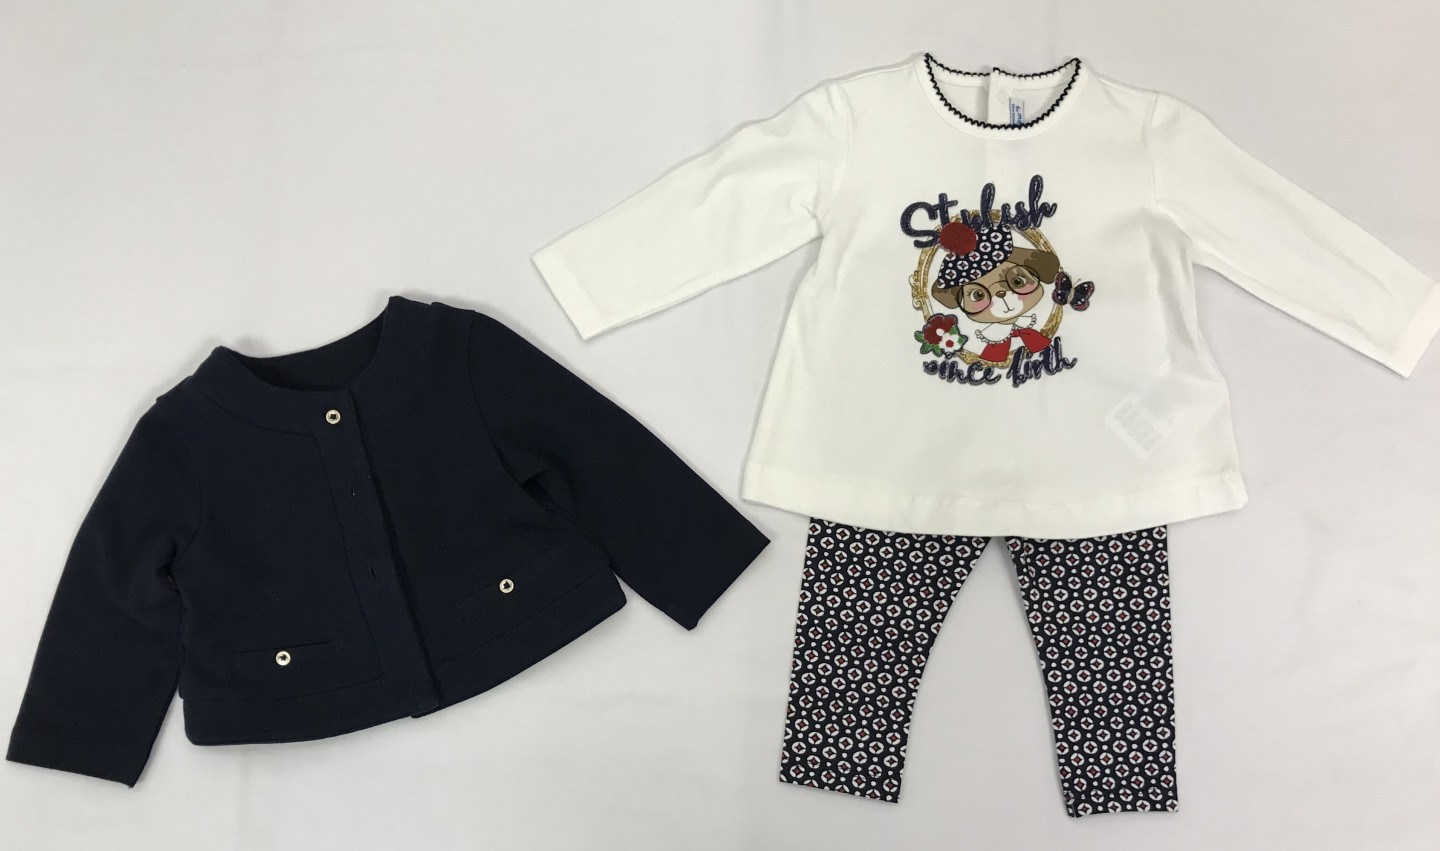 MAYORAL STYLISH SINCE BIRTH RED, WHITE AND BLUE TOP WITH LEGGINGS AND JACKET